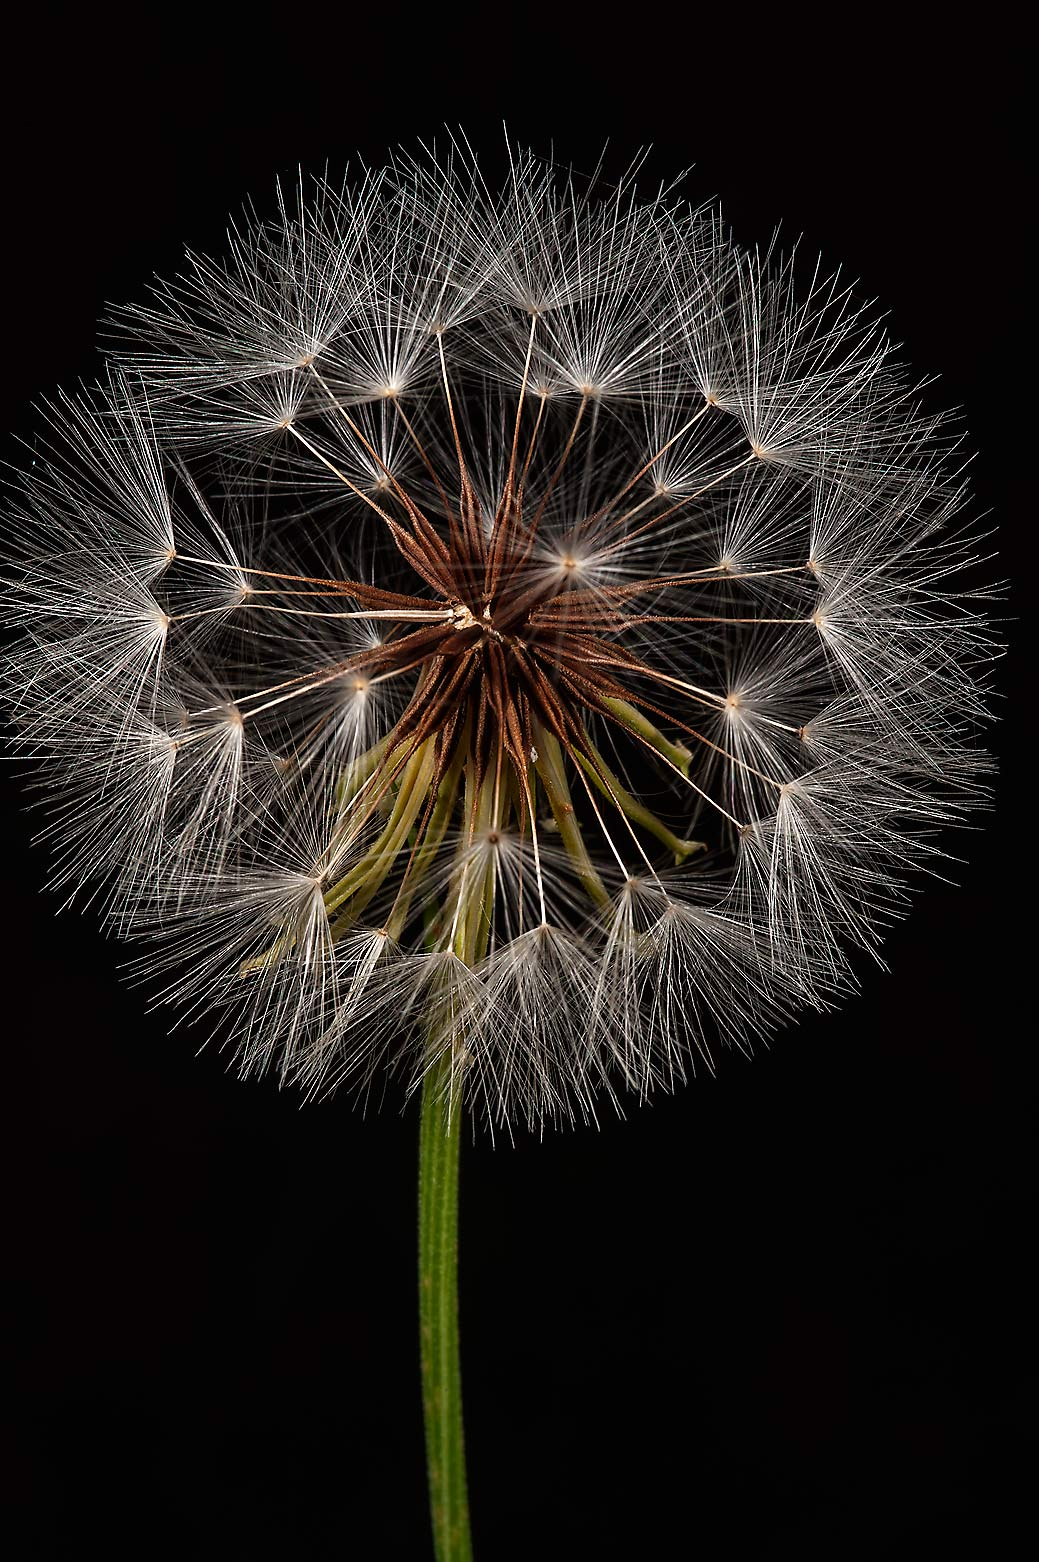 Seed head of Texas dandelion in Lick Creek Park. College Station, Texas